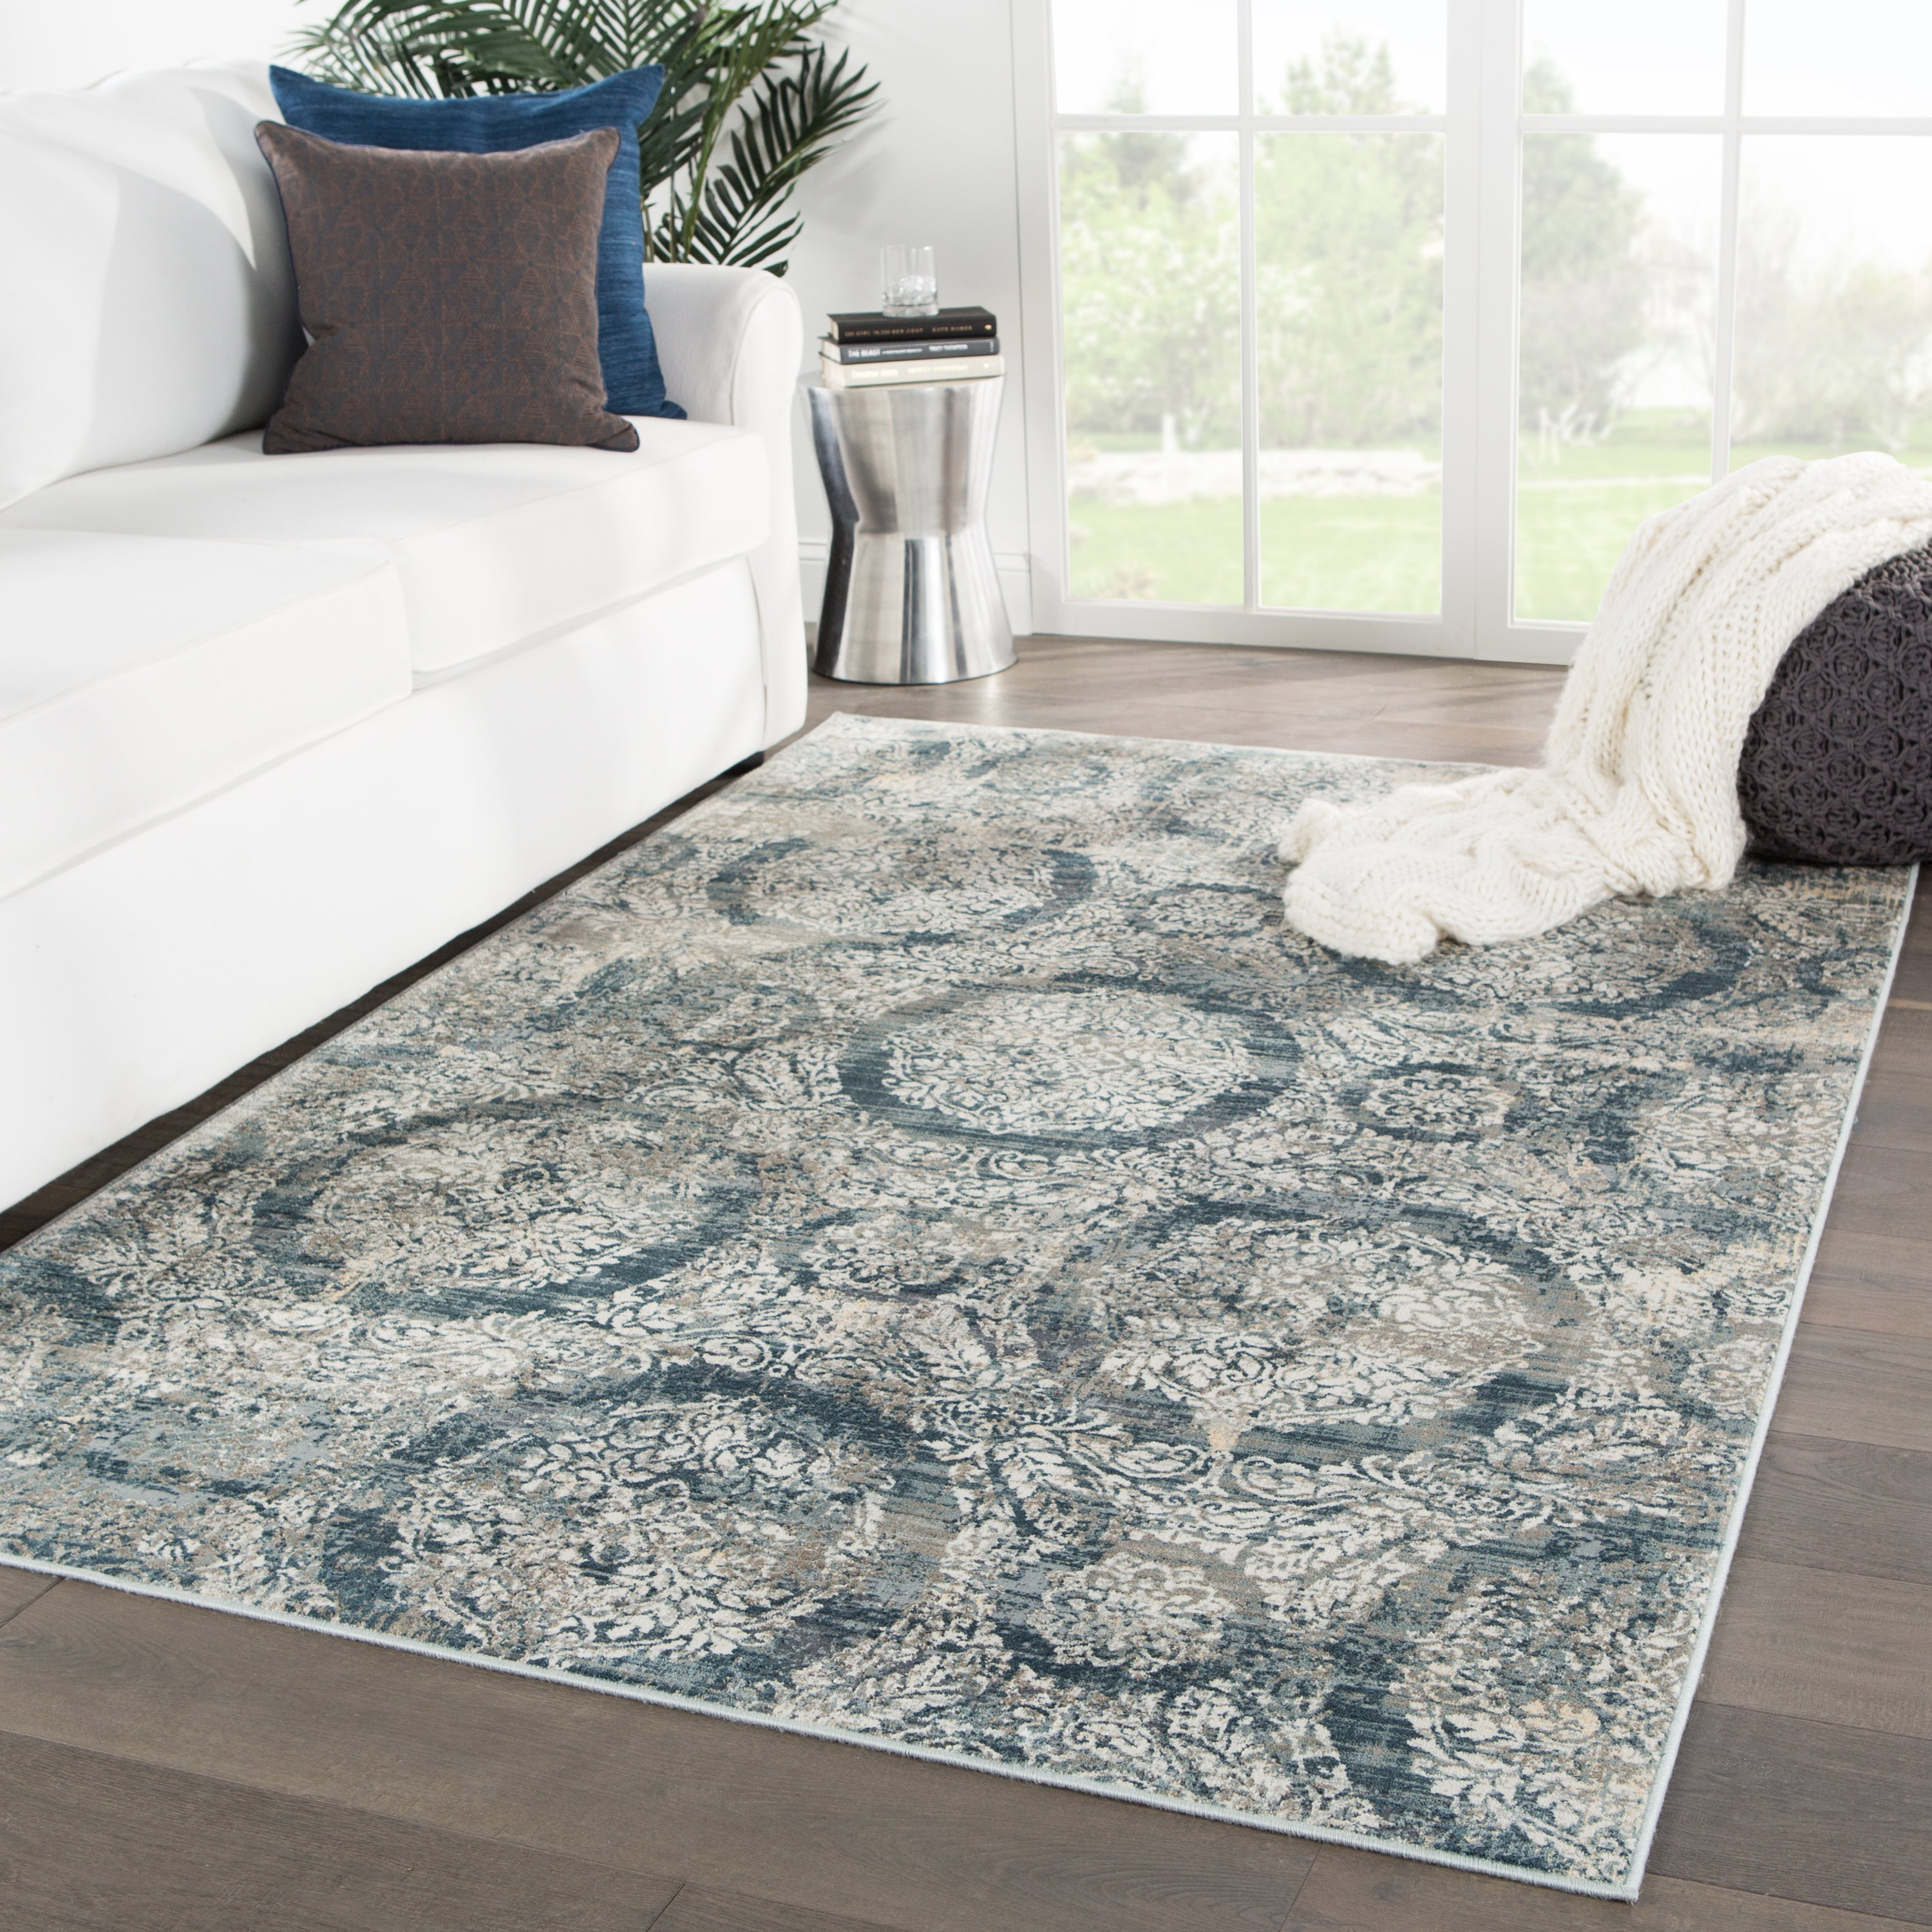 Rectangle Blue Damask Machine Made Synthetics Contemporary recommended for Kitchen, Bedroom, Bathroom, Dining Room, Office, Hallway, Living Room